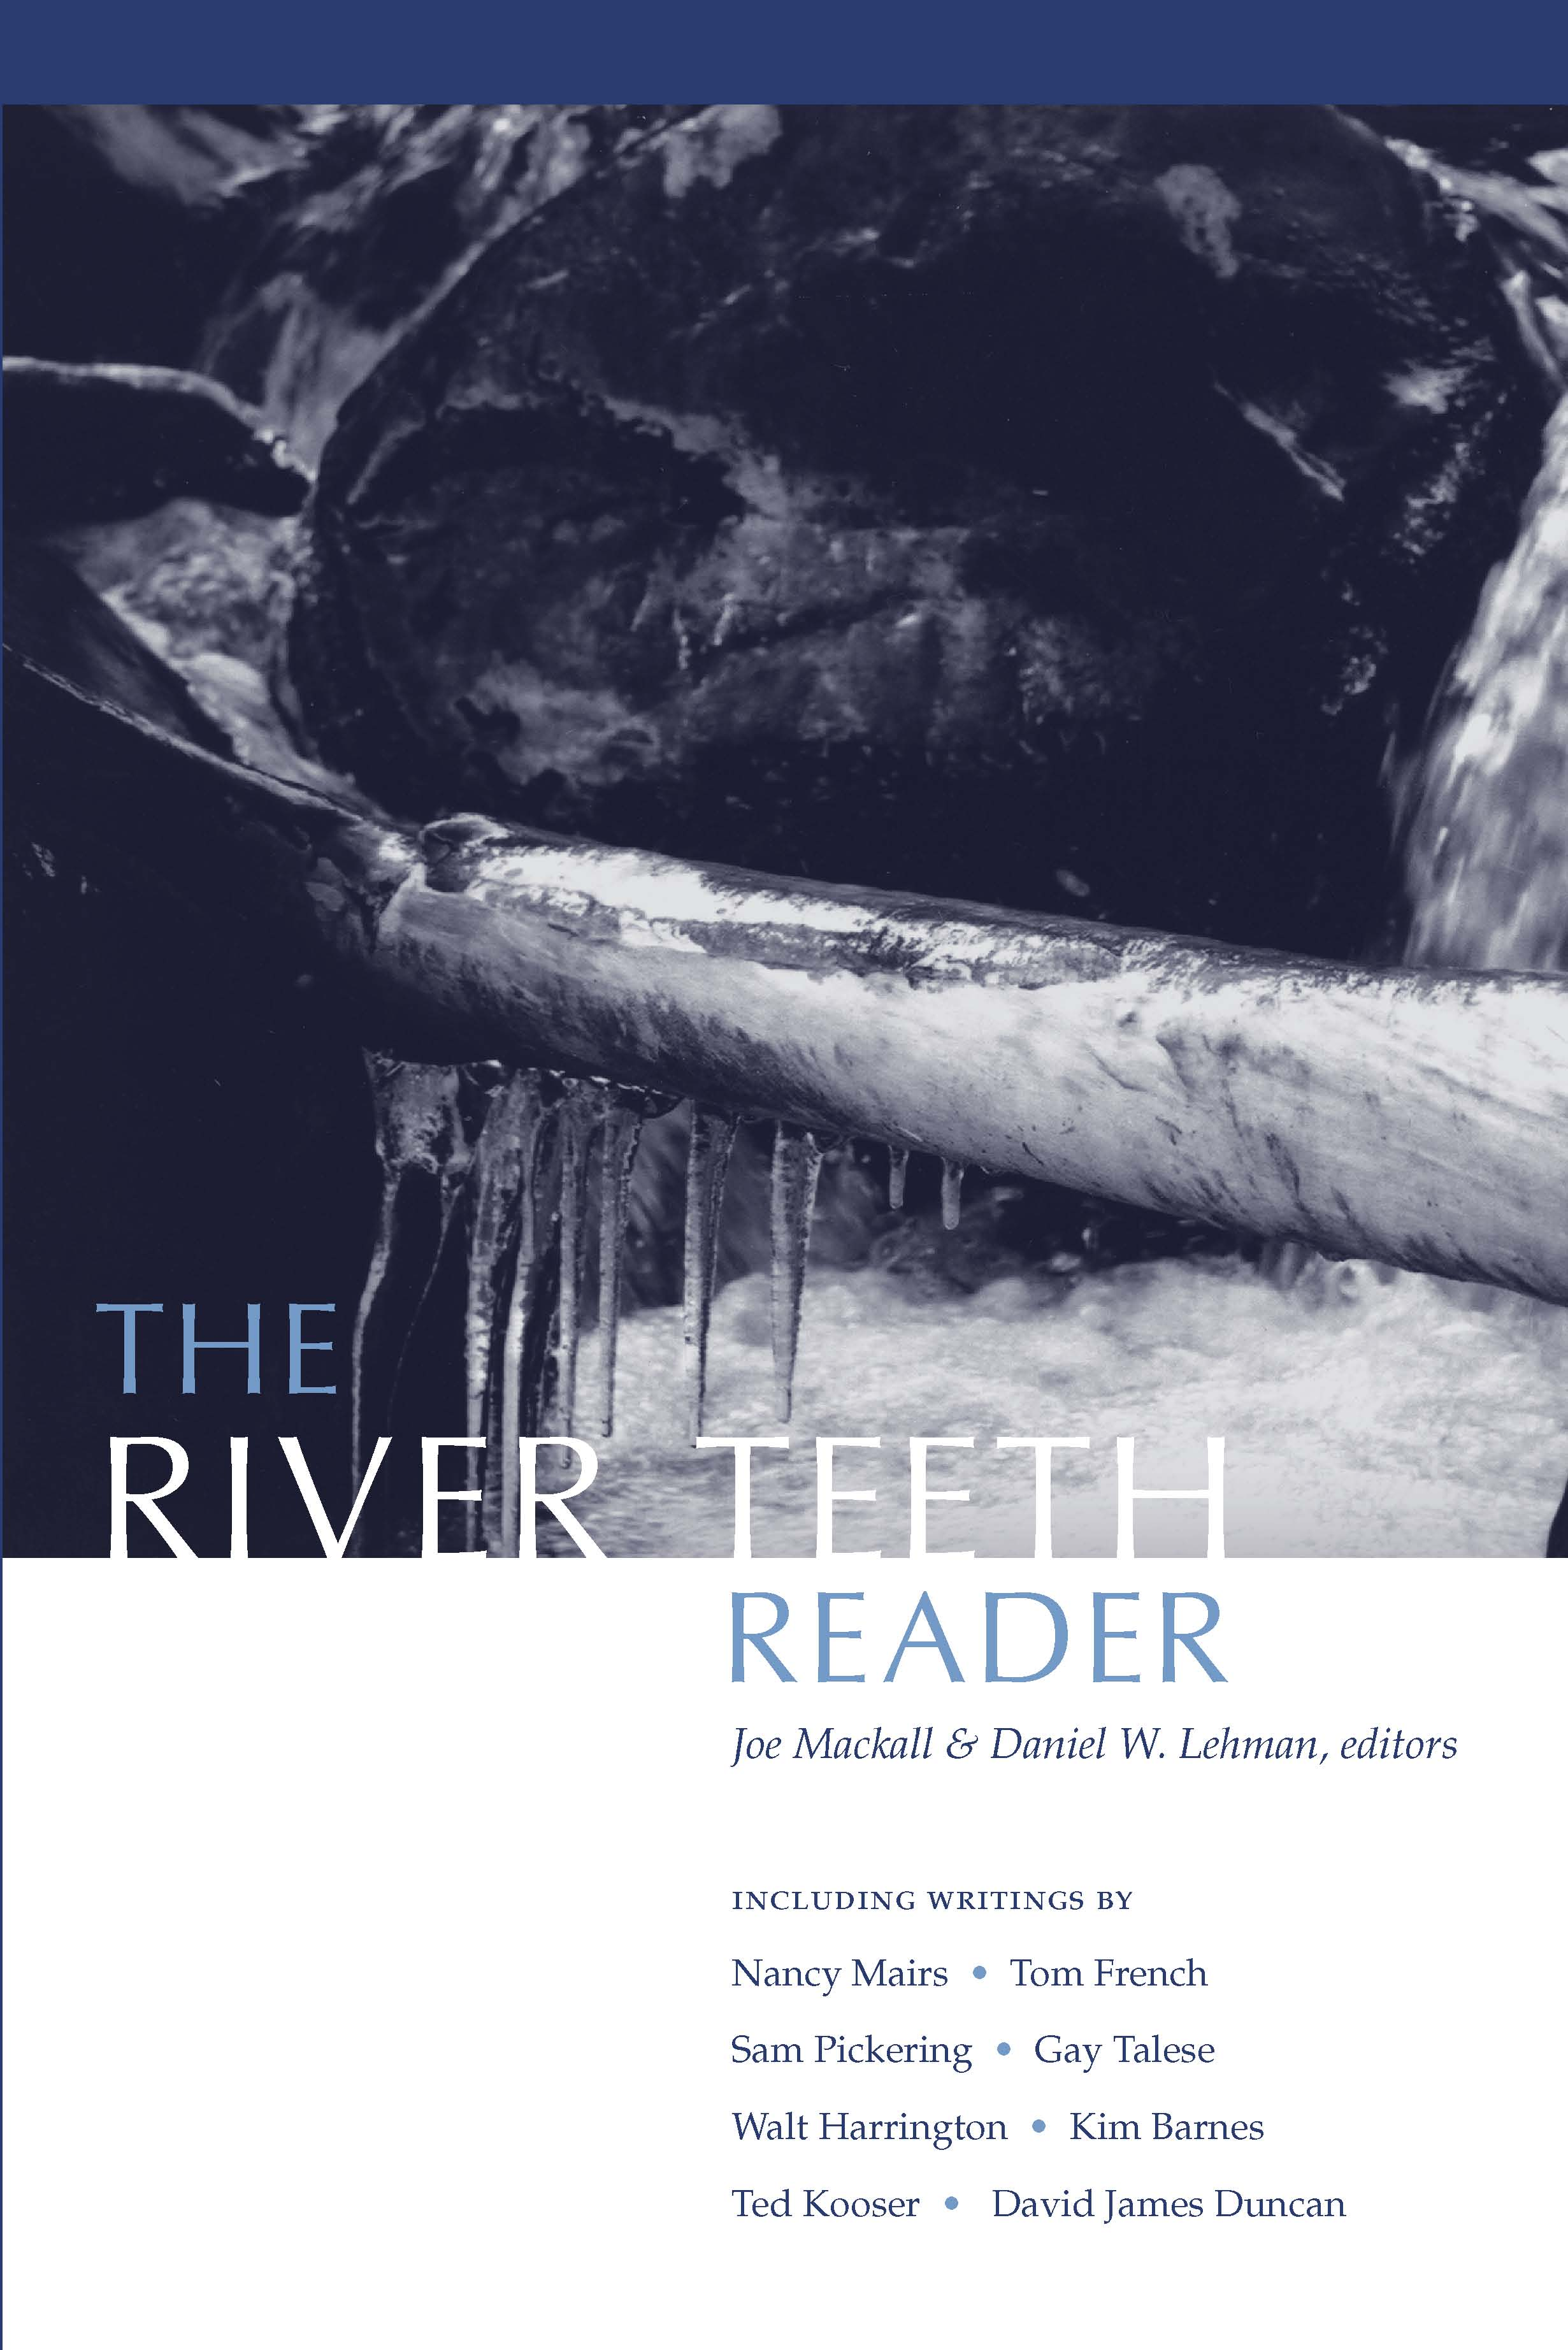 Volume 10 - The River Teeth Reader